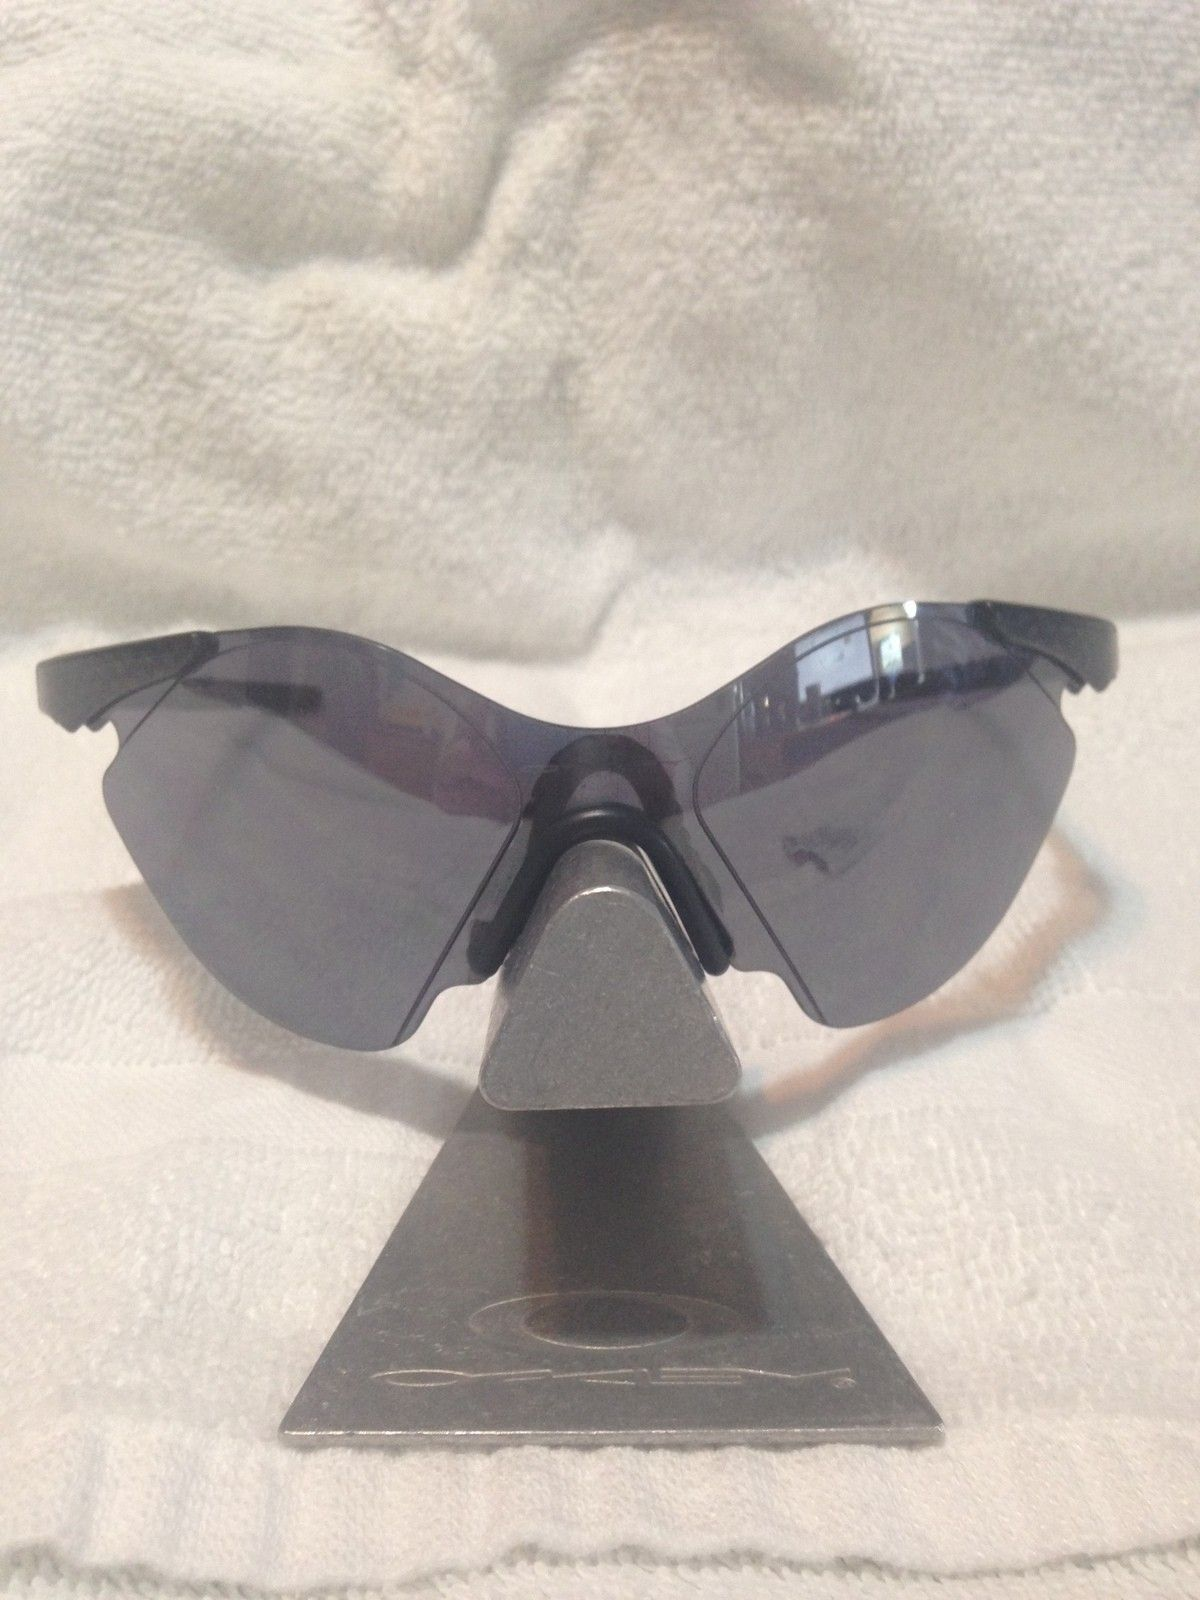 Oakley Stands, Glasses and Case For Sell - UqCasm.jpg